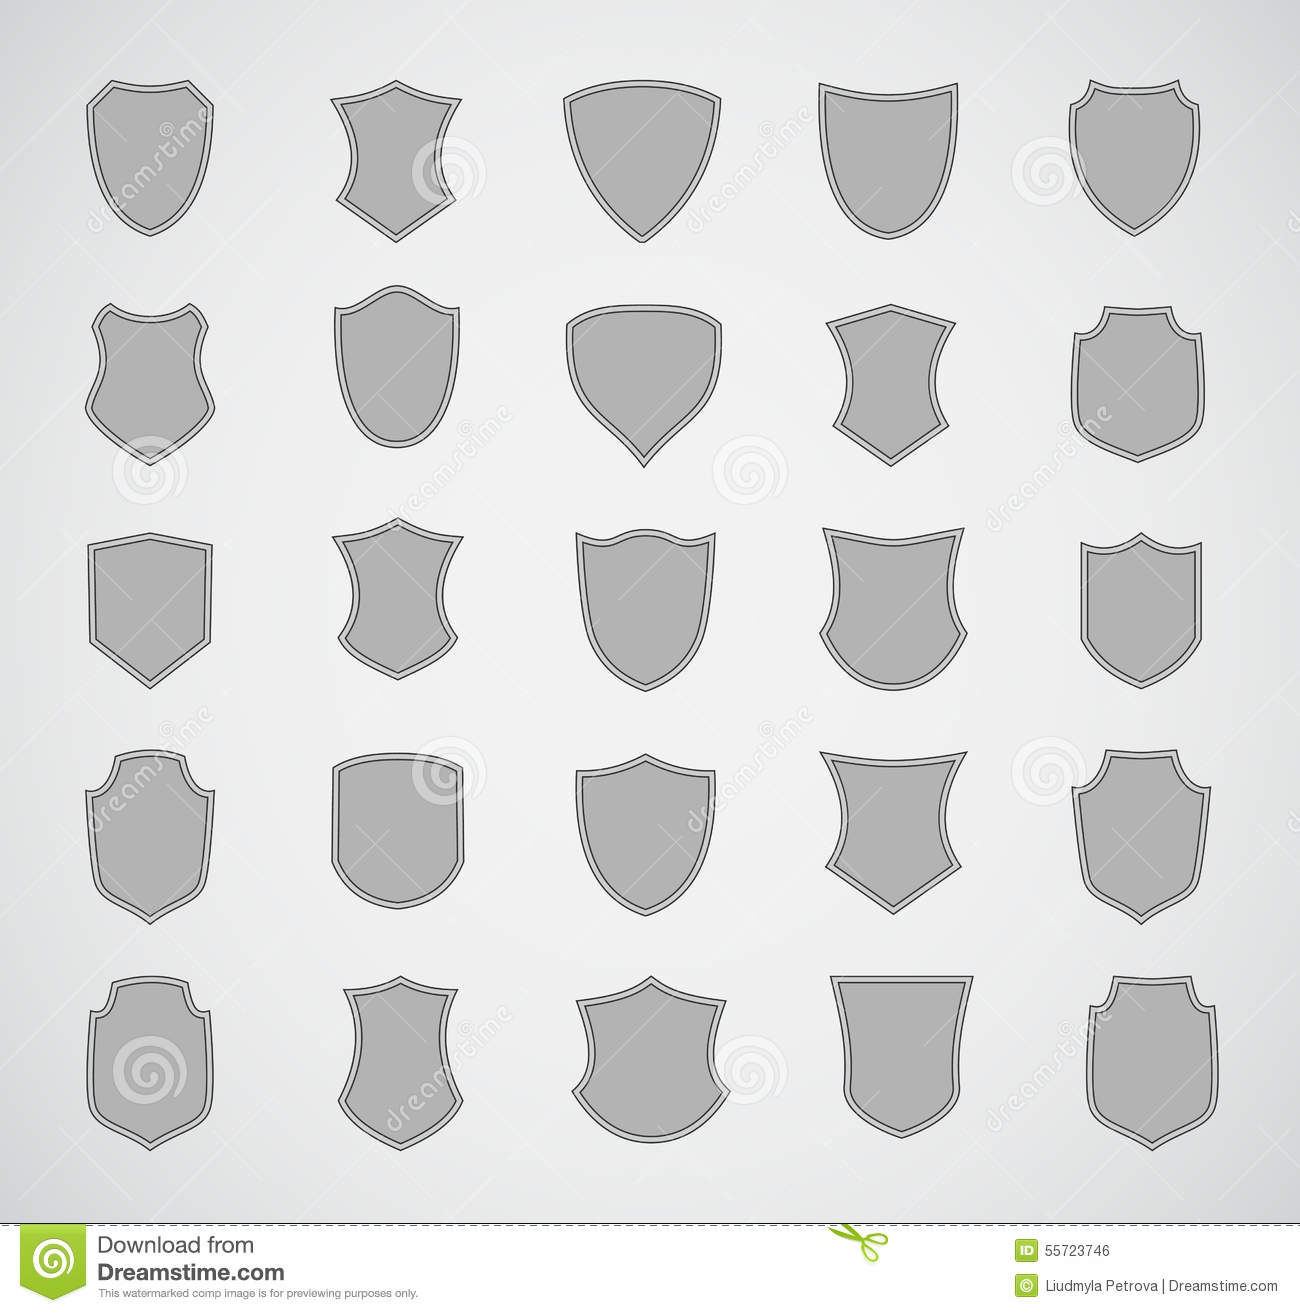 Shield design set royalty free stock photos image 5051988 - Grey Silhouette Shield Design Set Of Various Royalty Free Stock Image